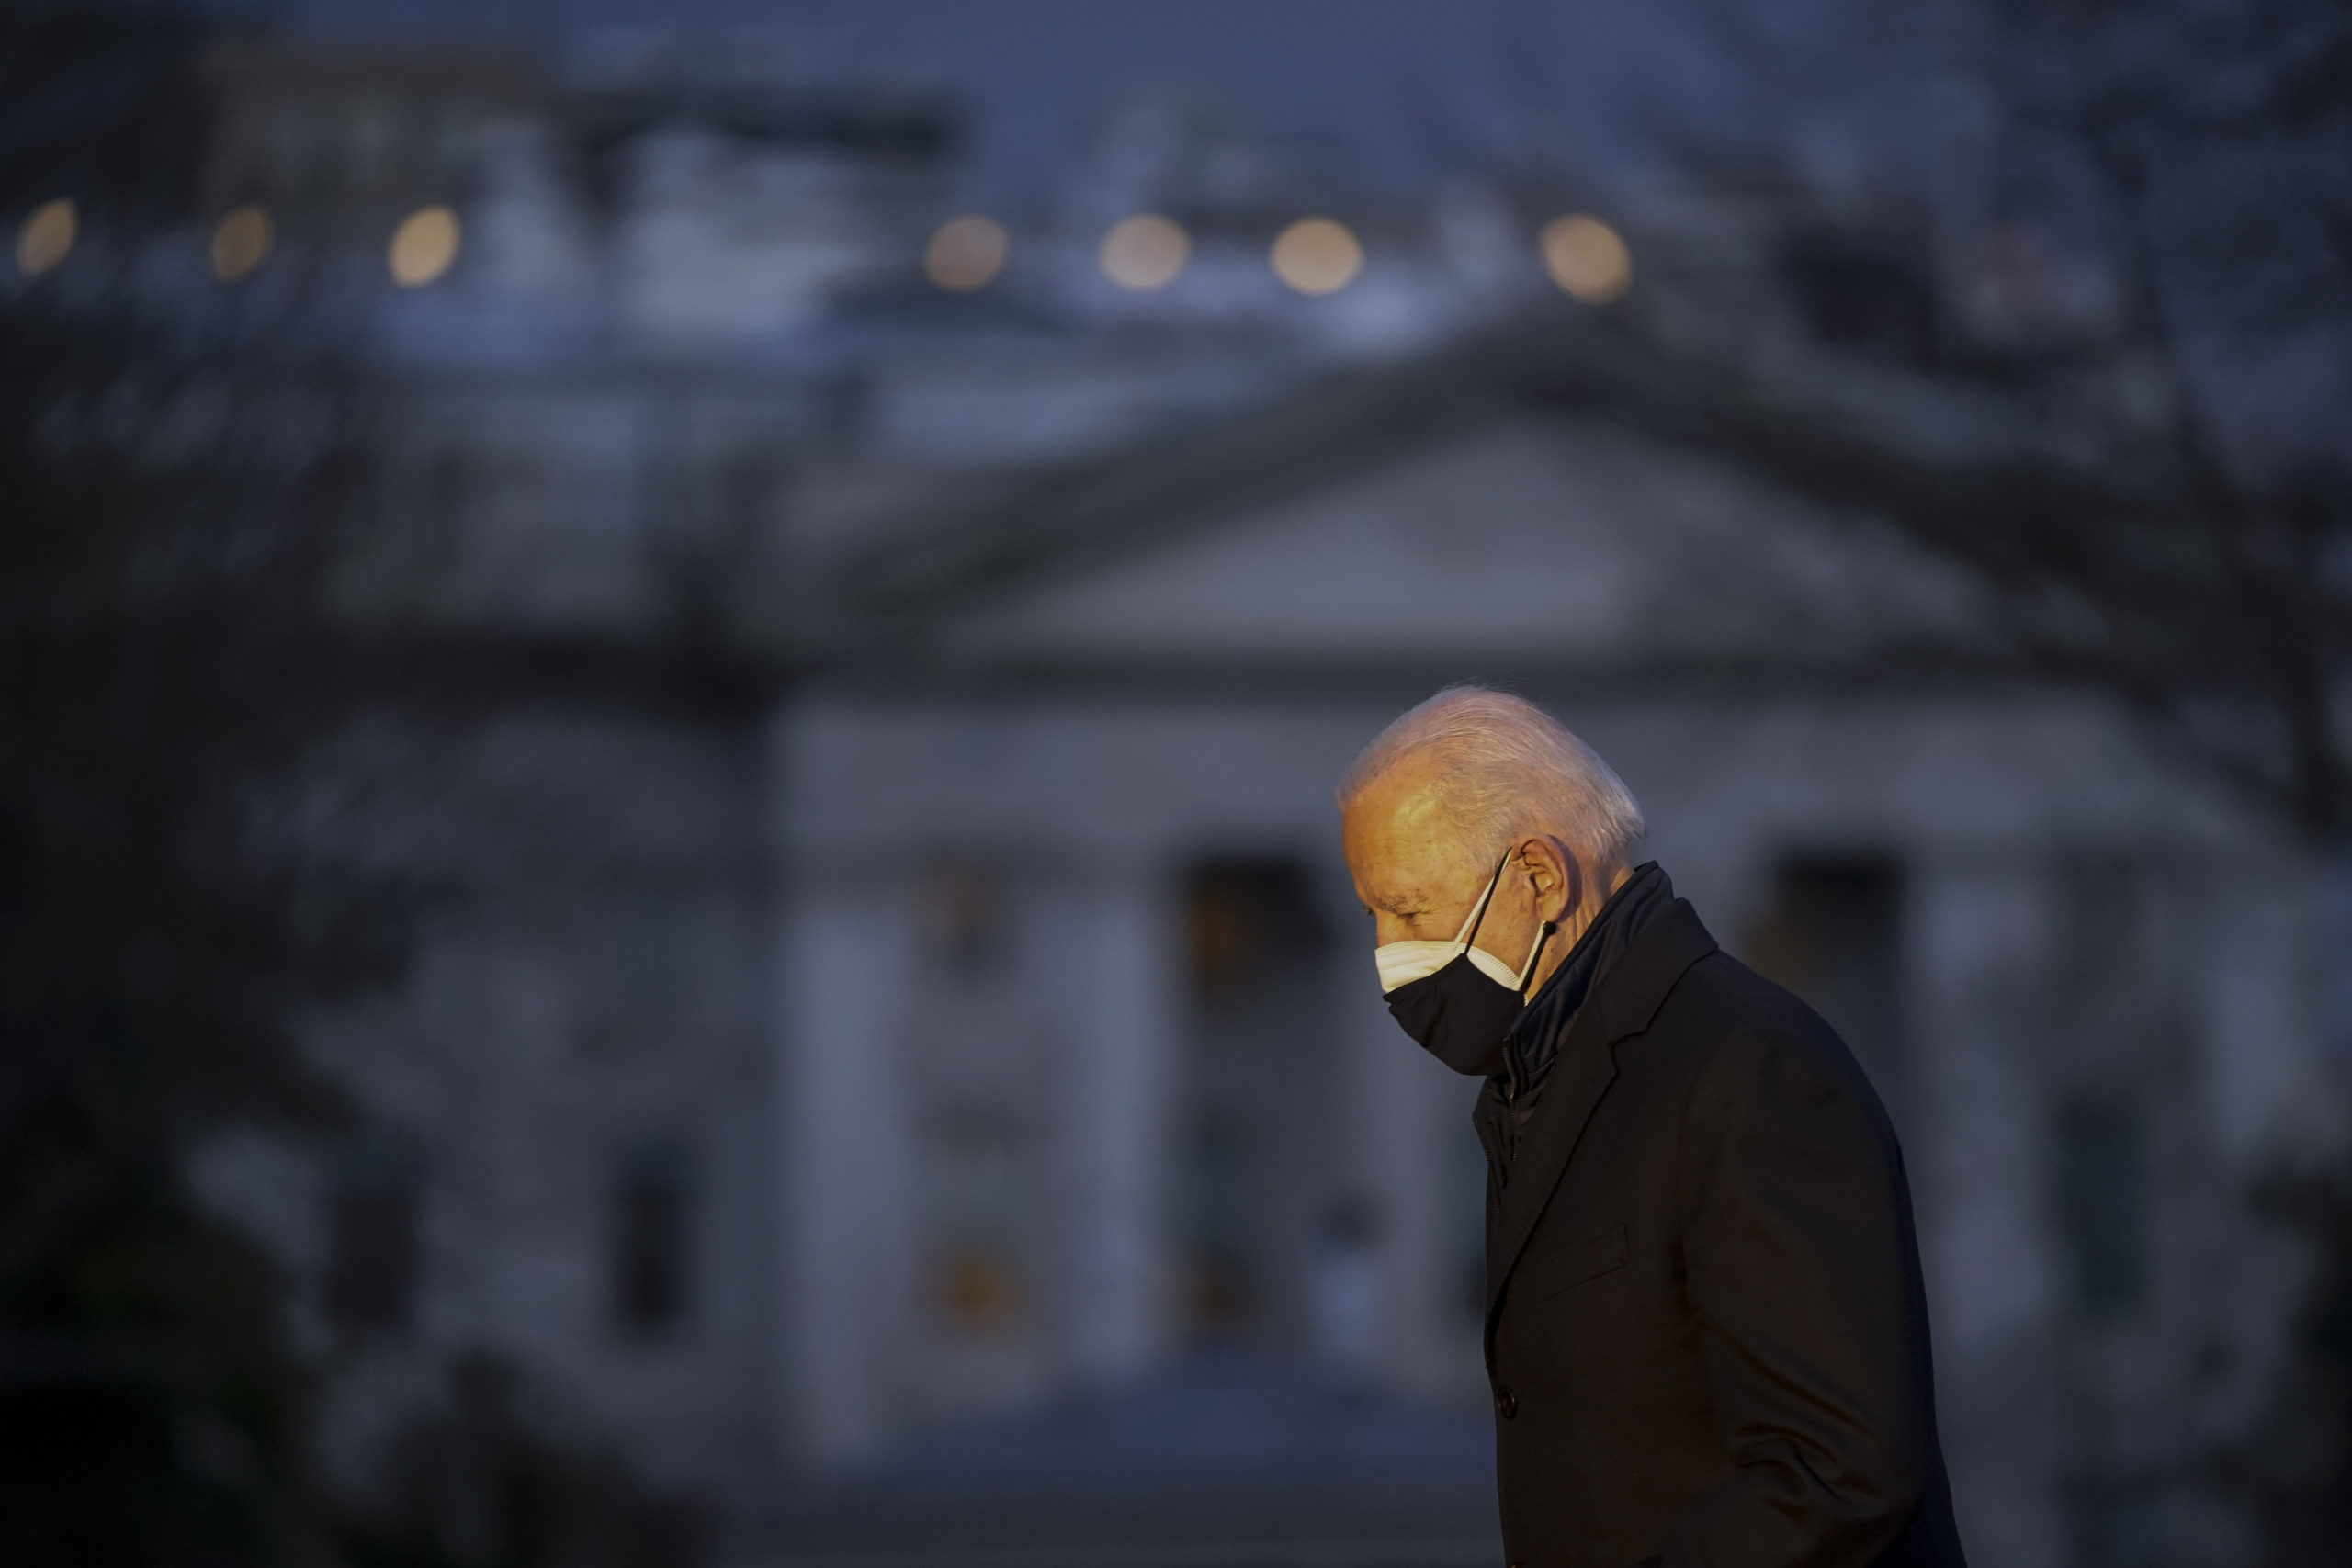 WASHINGTON, DC - FEBRUARY 19: U.S. President Joe Biden returns to the White House after a trip to Michigan on February 19, 2021 in Washington, DC. The president traveled to Kalamazoo, Michigan to visit Pfizer's COVID-19 vaccine manufacturing facility. (Photo by Drew Angerer/Getty Images)